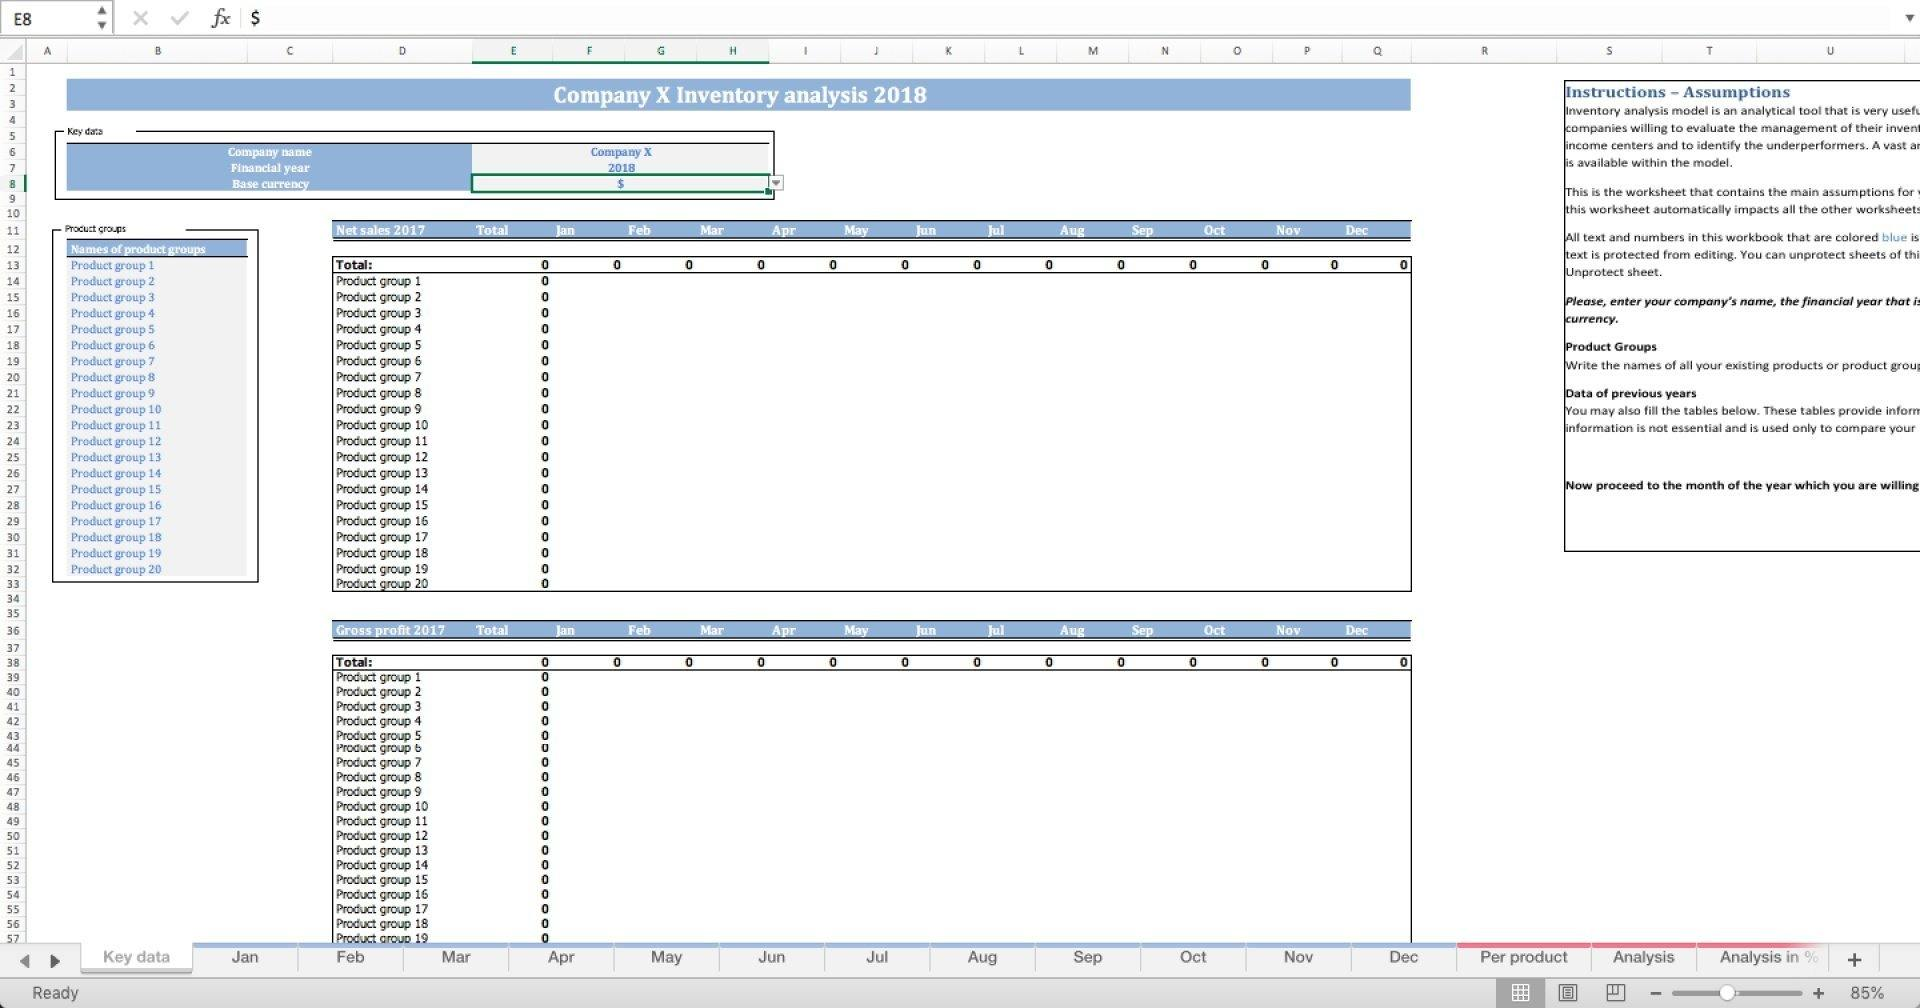 Inventory Analysis Excel Template - Templarket -  Business Templates Marketplace